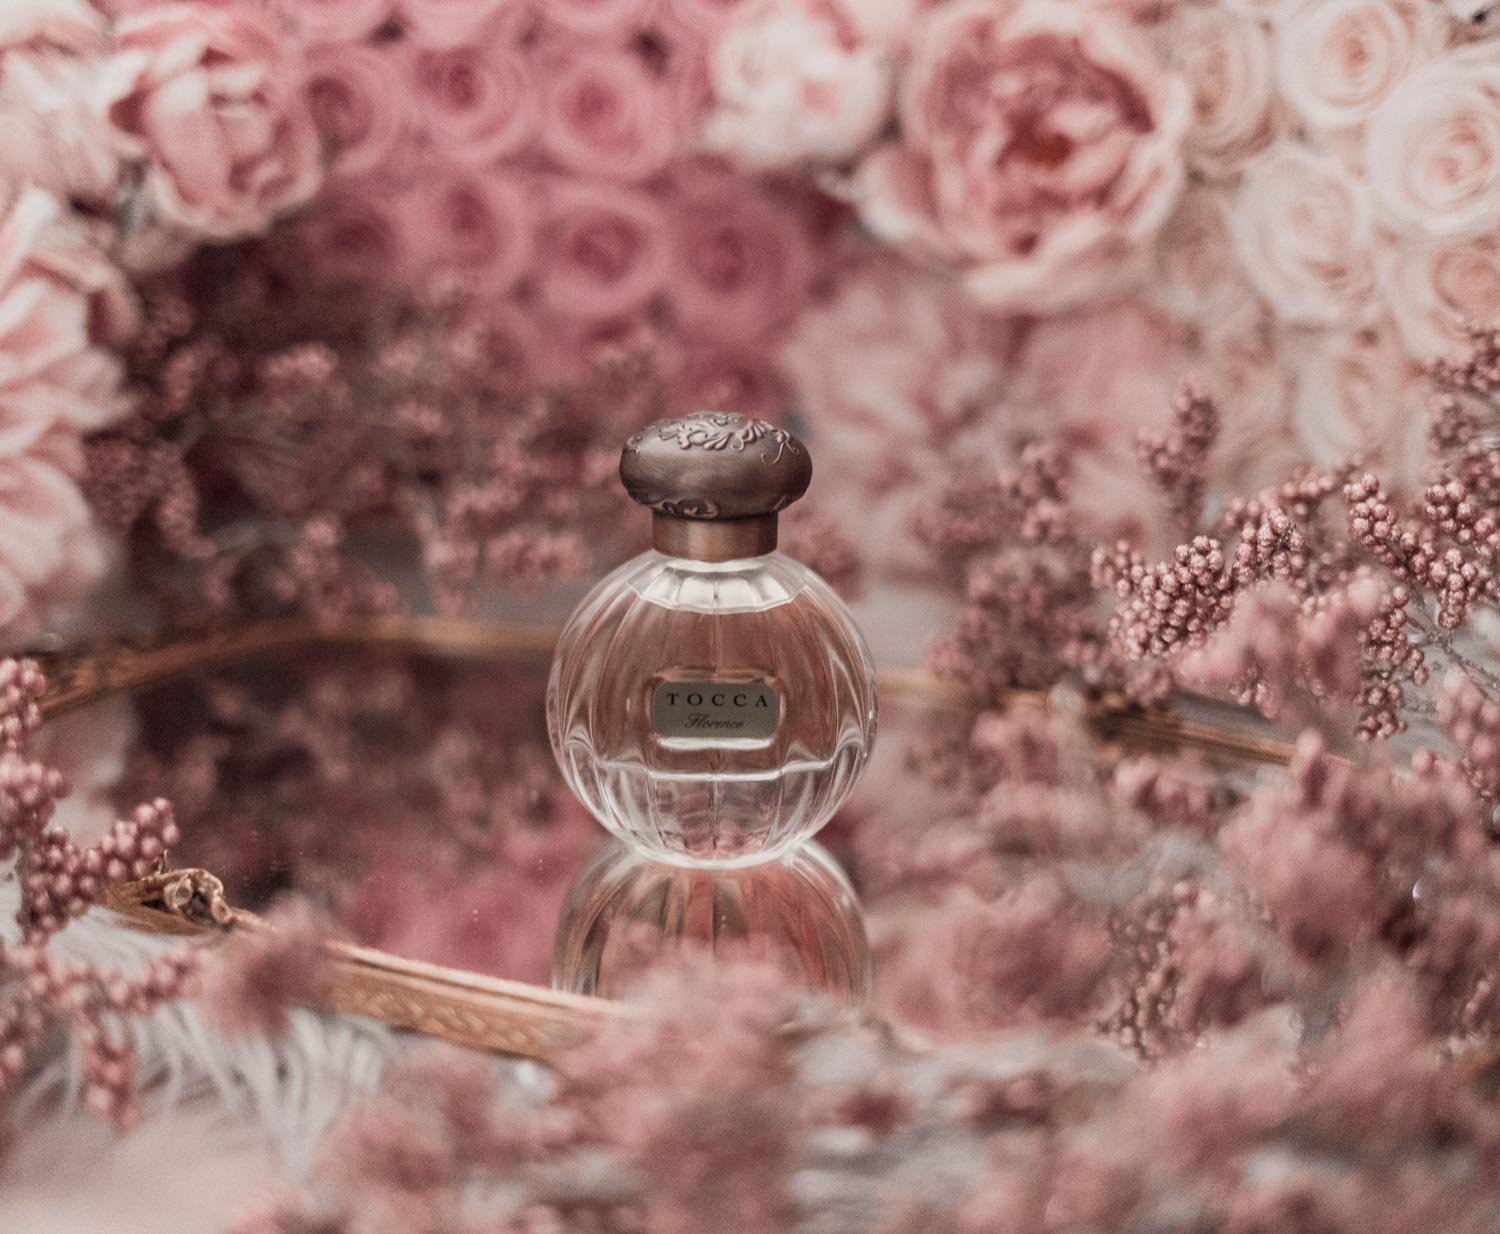 Feminine fashion blogger Elizabeth Hugen of Lizzie in Lace shares the best feminine perfumes and her girly fragrance collection including Tocca Florence